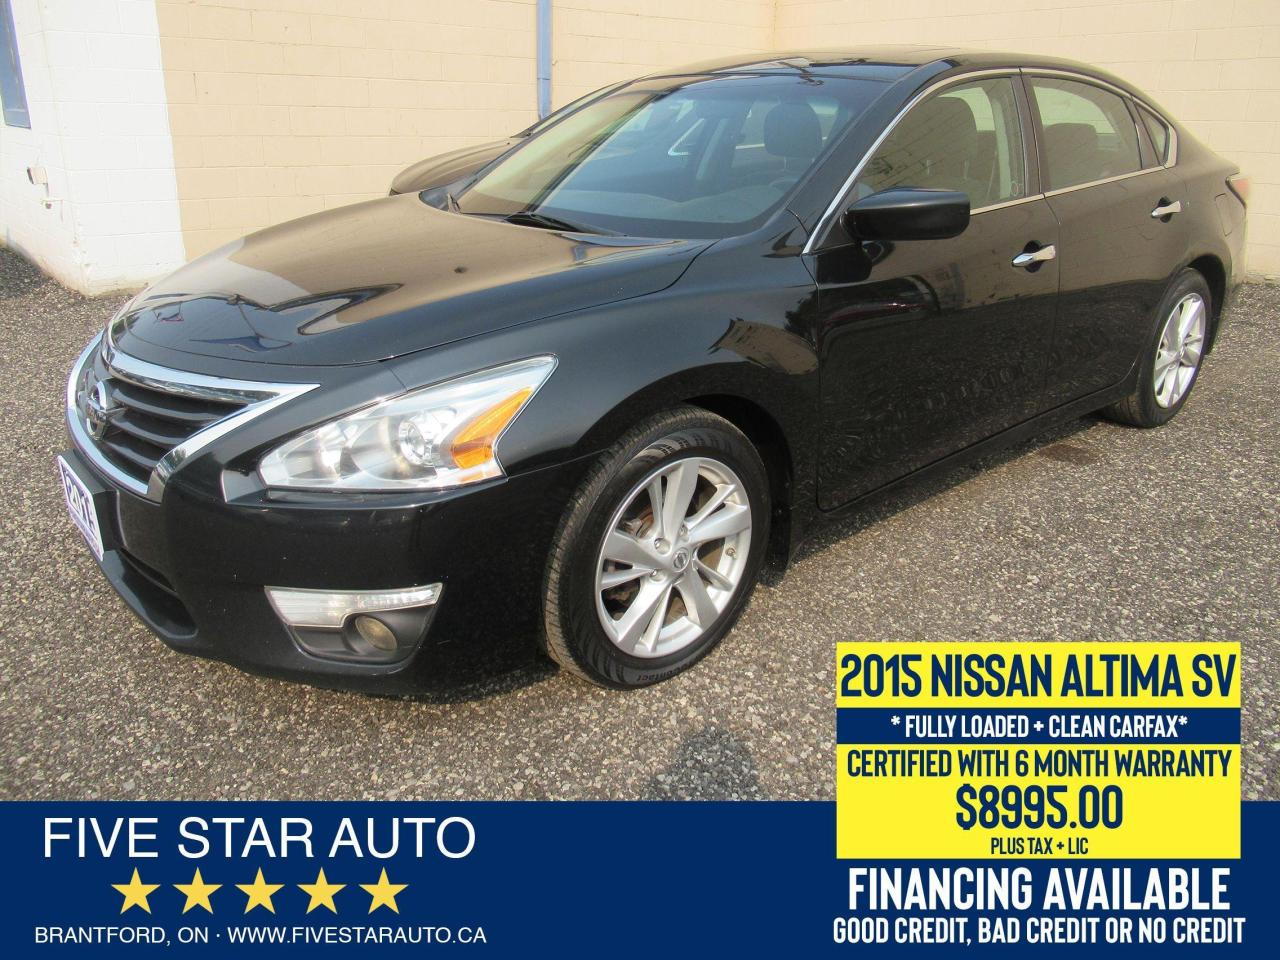 2015 Nissan Altima 2.5 SV *Clean Carfax* Certified + 6 Month Warranty